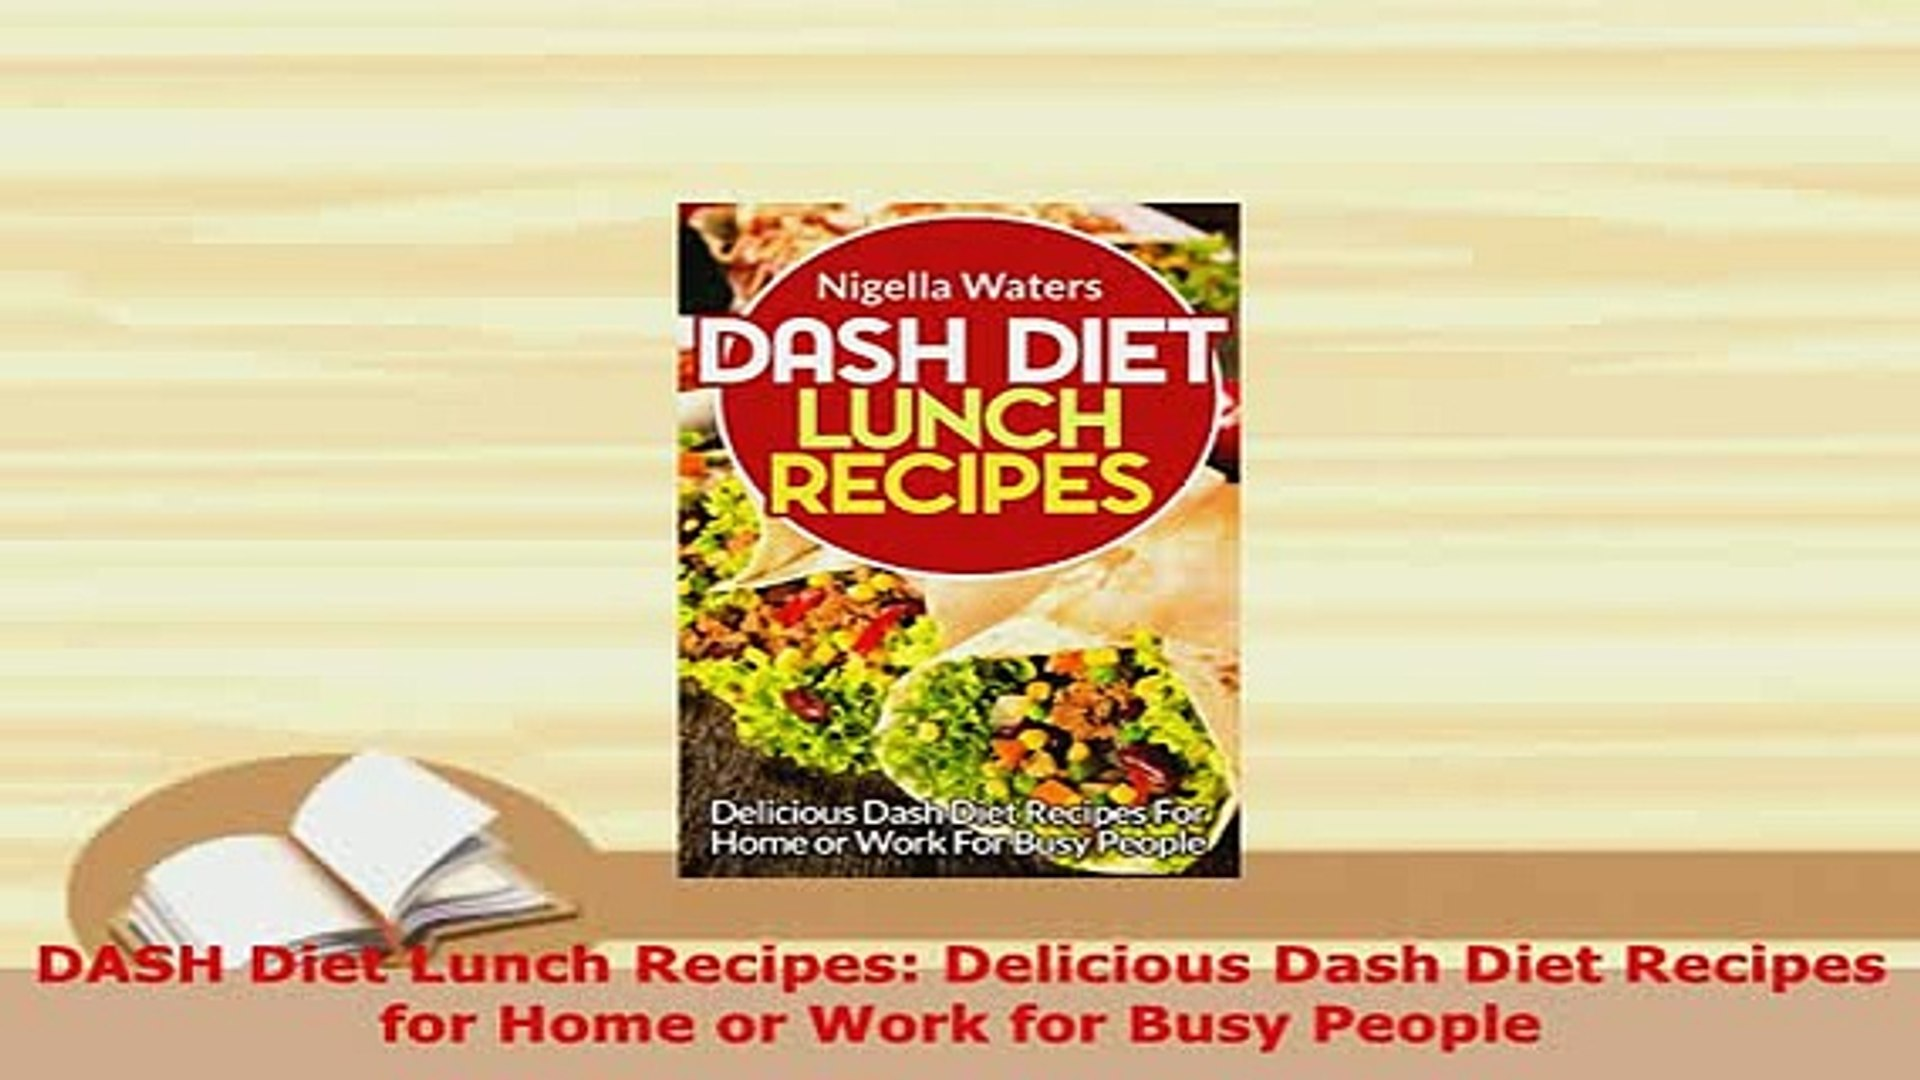 Download  DASH Diet Lunch Recipes Delicious Dash Diet Recipes for Home or Work for Busy People Downl